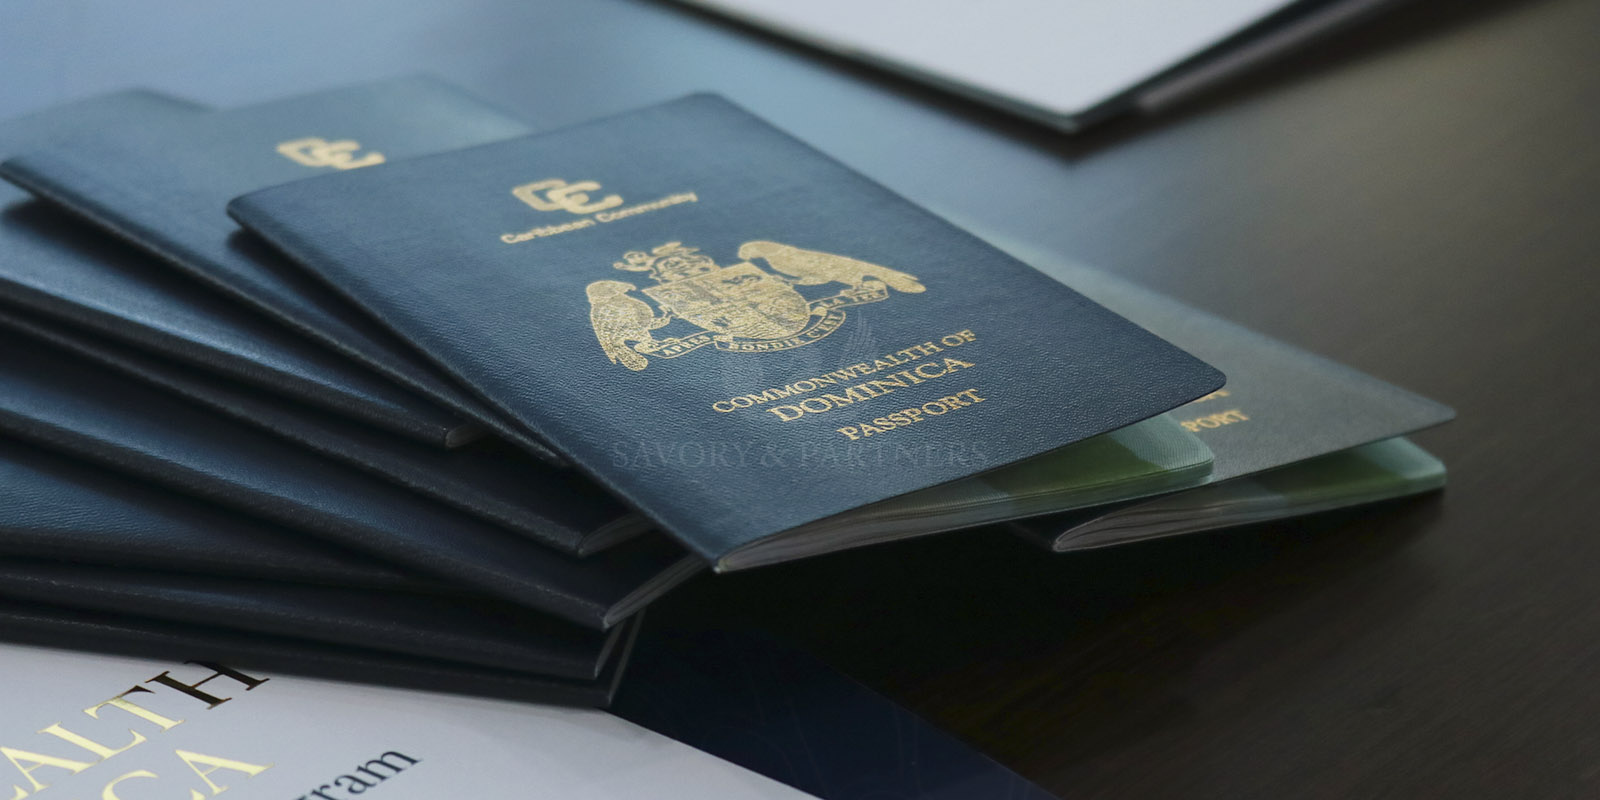 New Changes to Dominica Citizenship by Investment Program - All You Need to Know